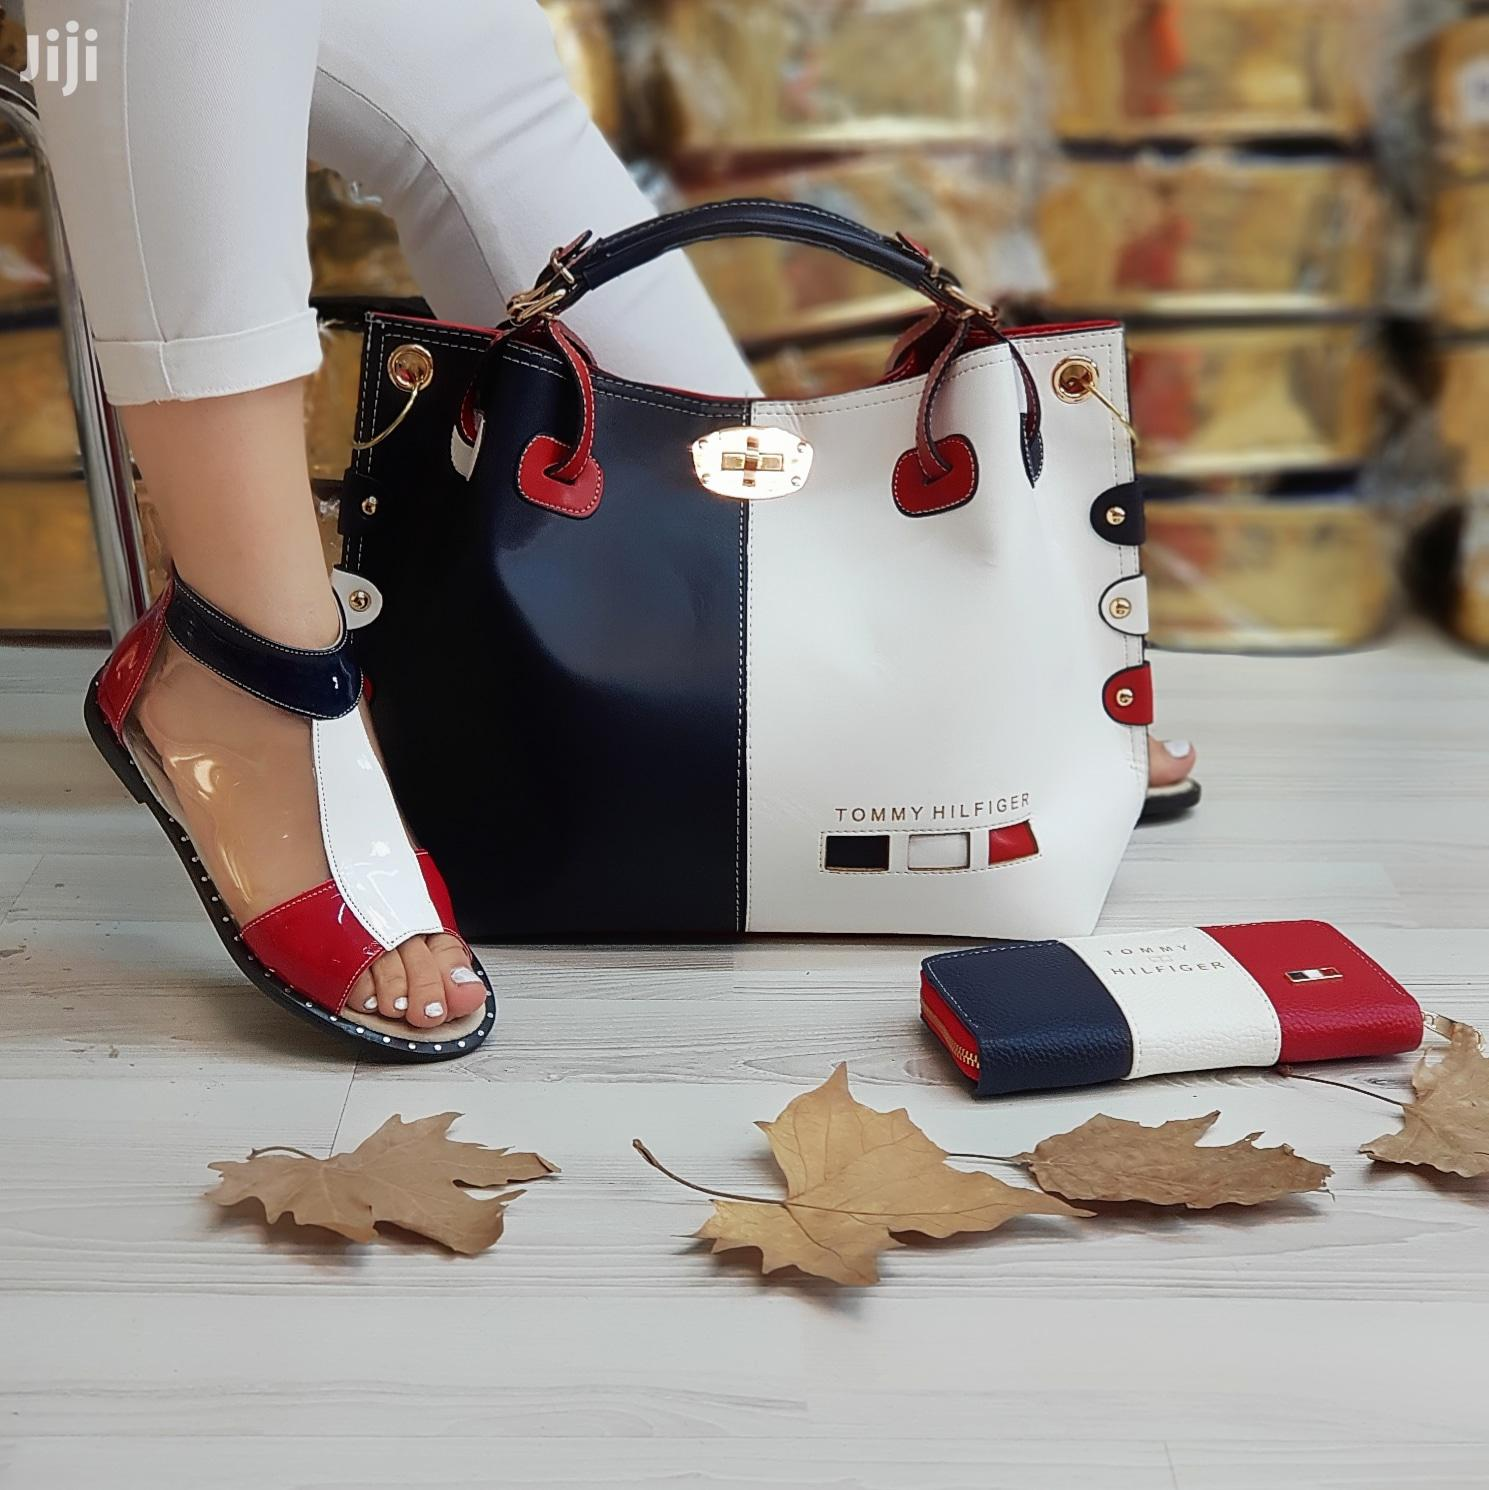 Tommy Hilfiger Women's Shoes and Bag